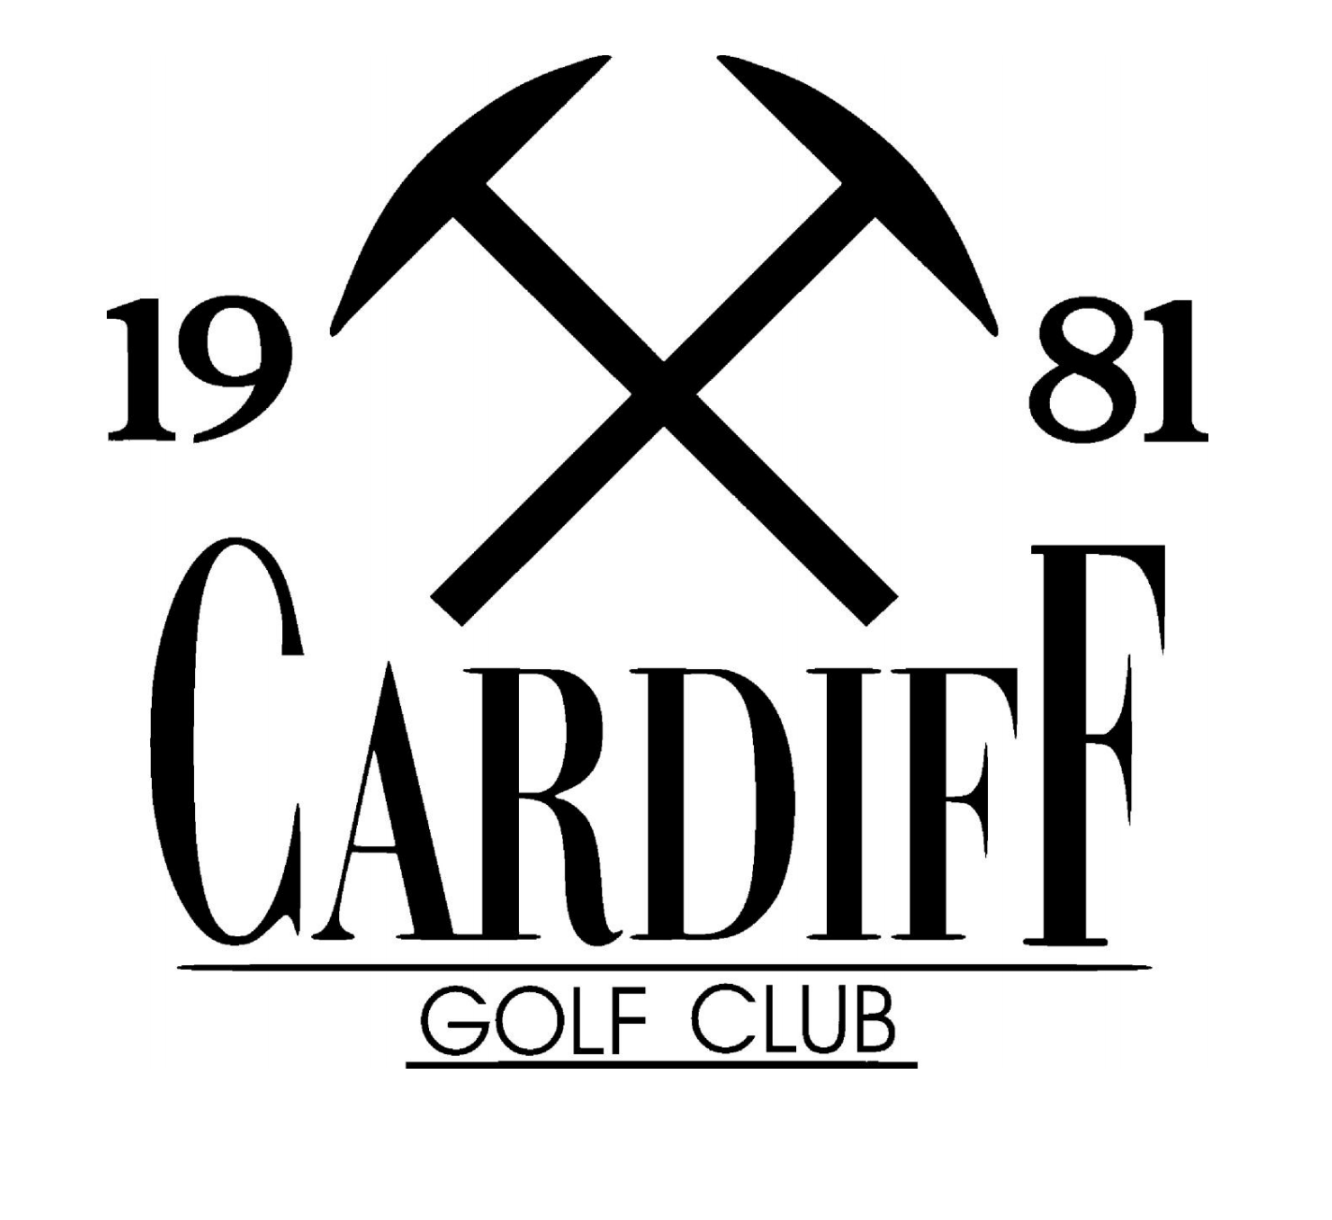 Cardiff Golf & Country Club